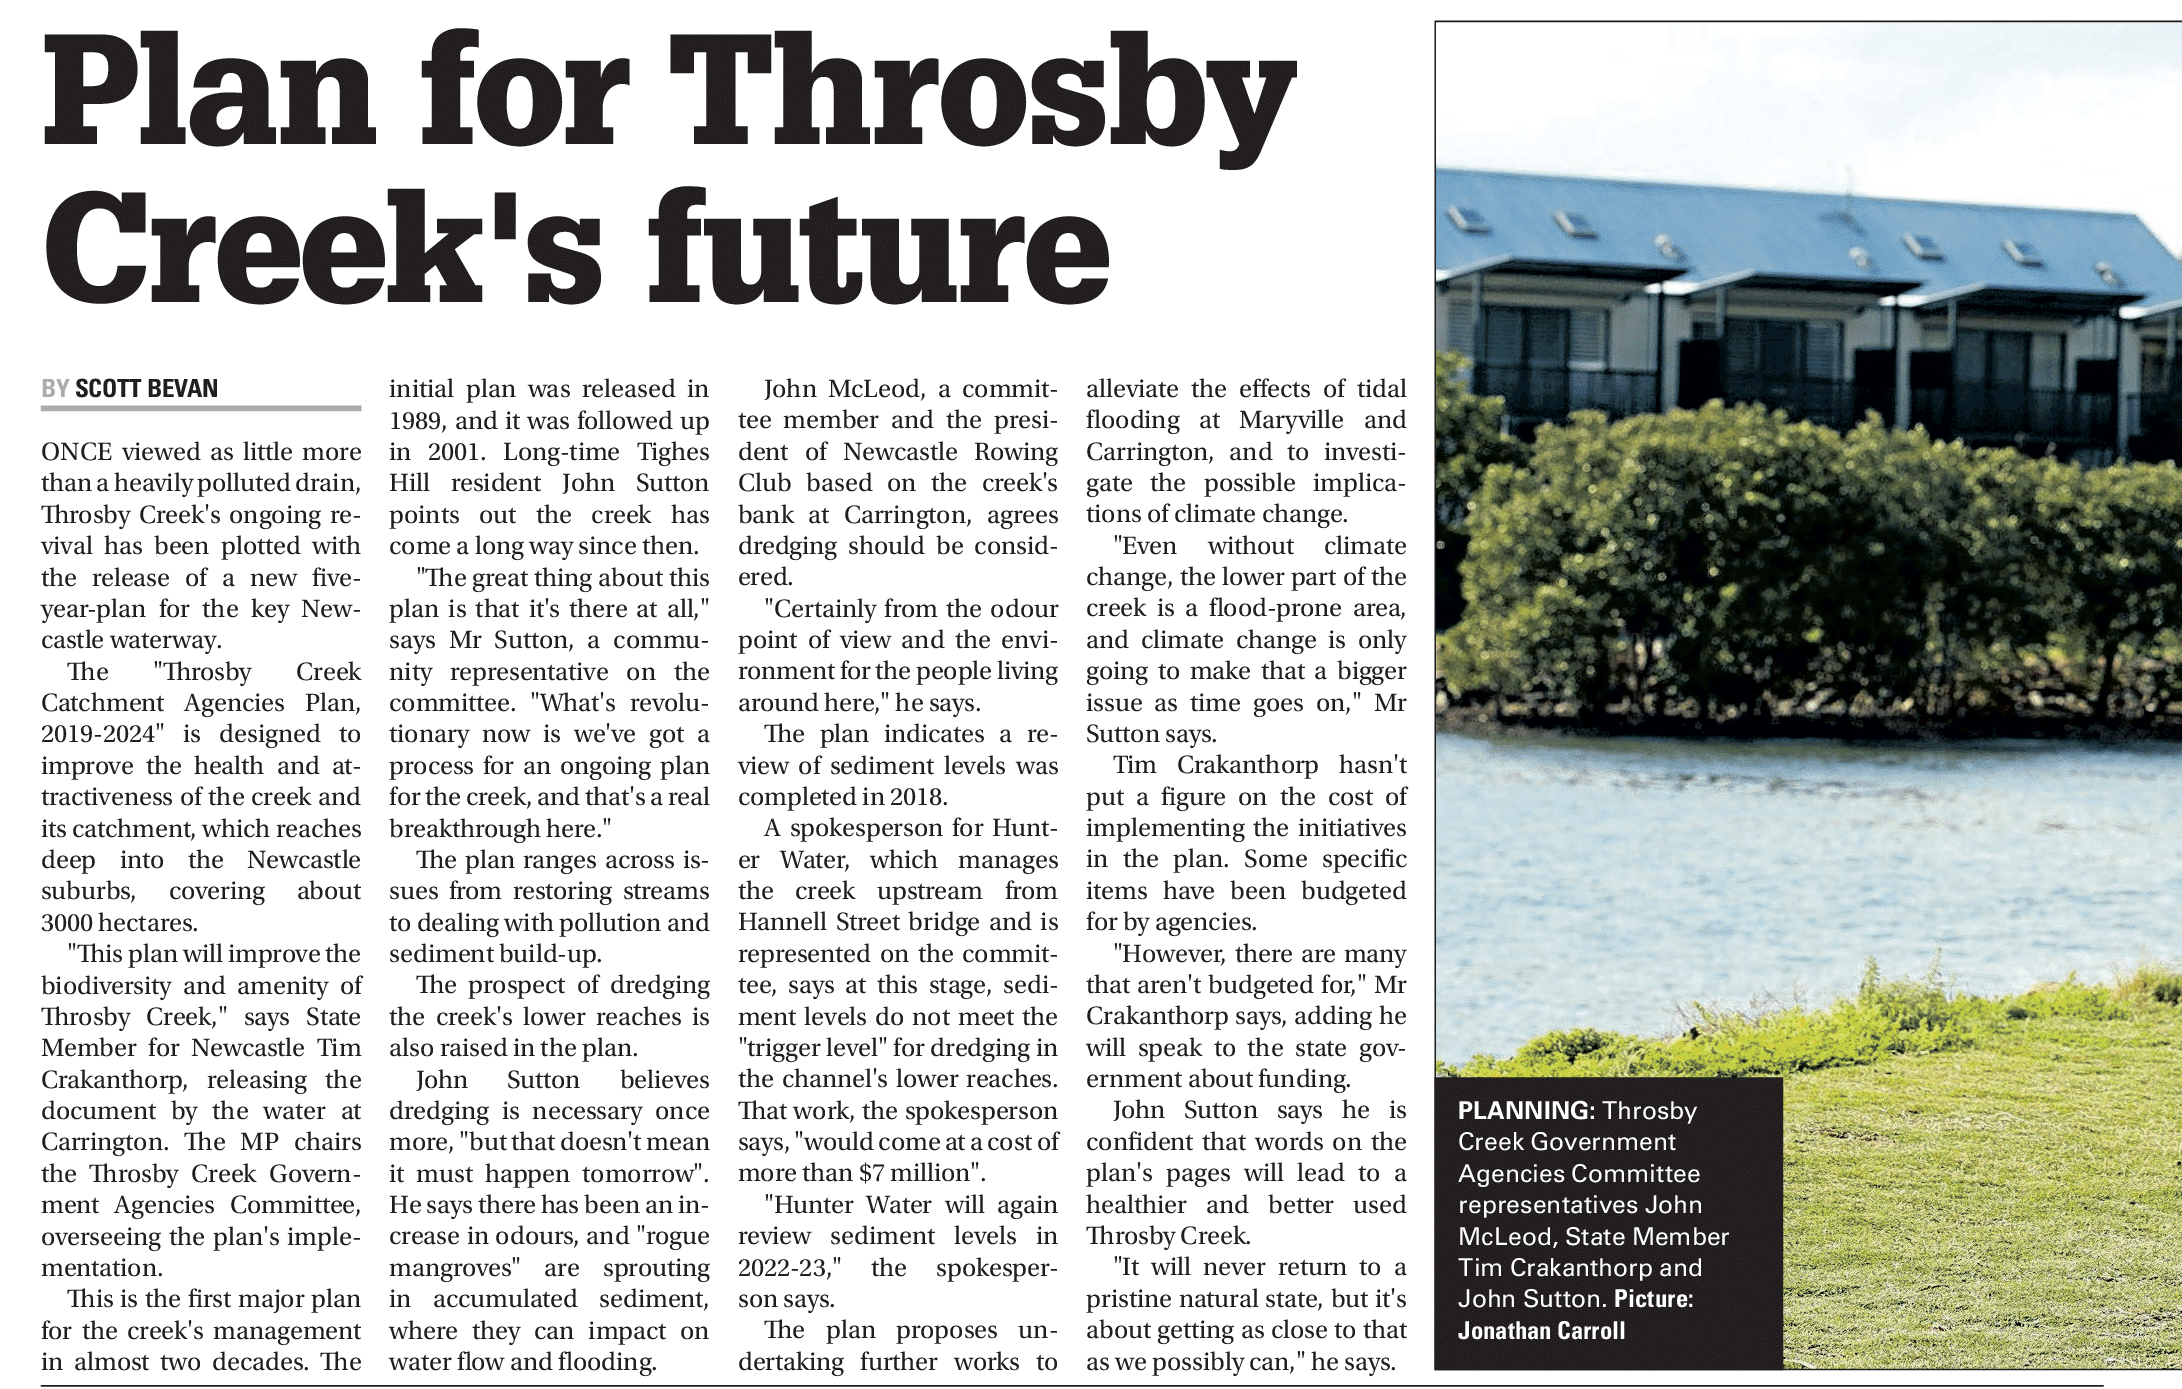 Plan for throsby creek's future   newcastle herald 4 june 2019